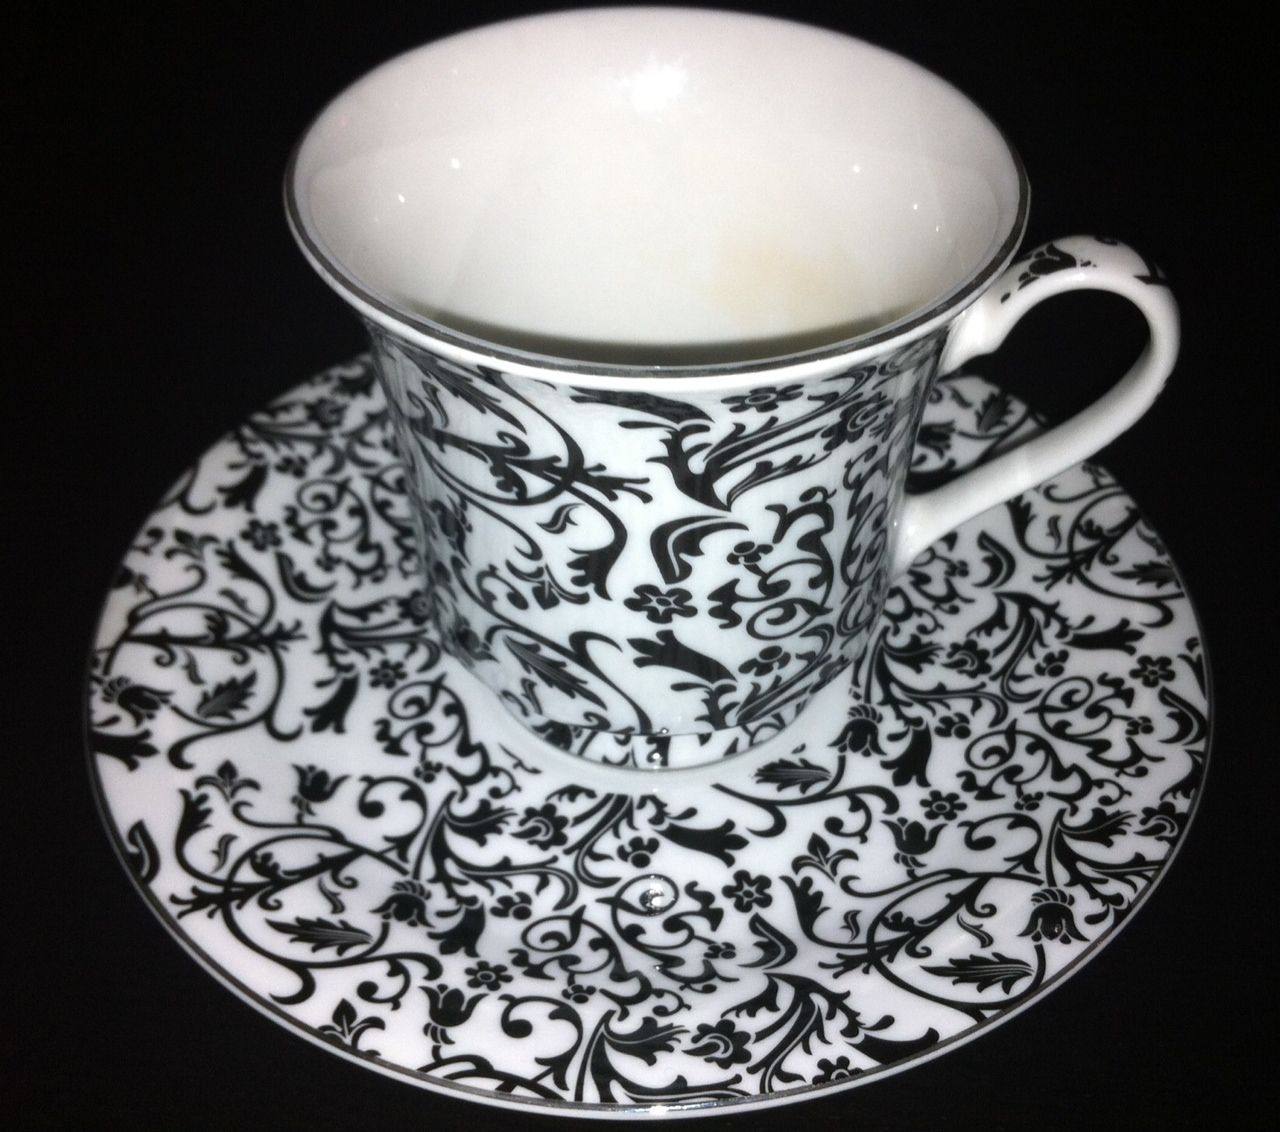 Cup and saucer to match your black and white cupcakes